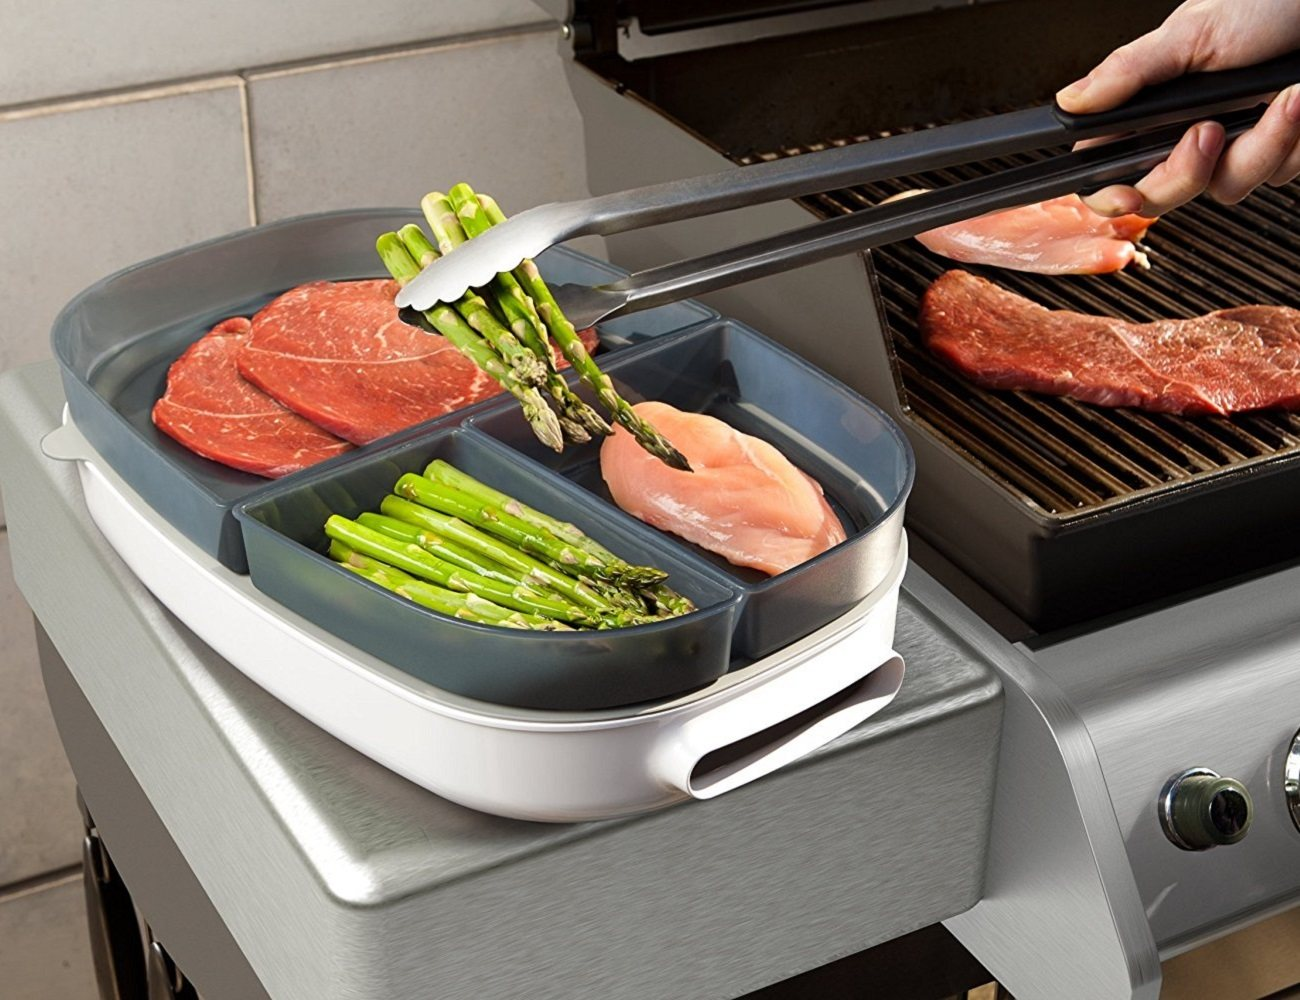 grab-and-grill-with-porter-1